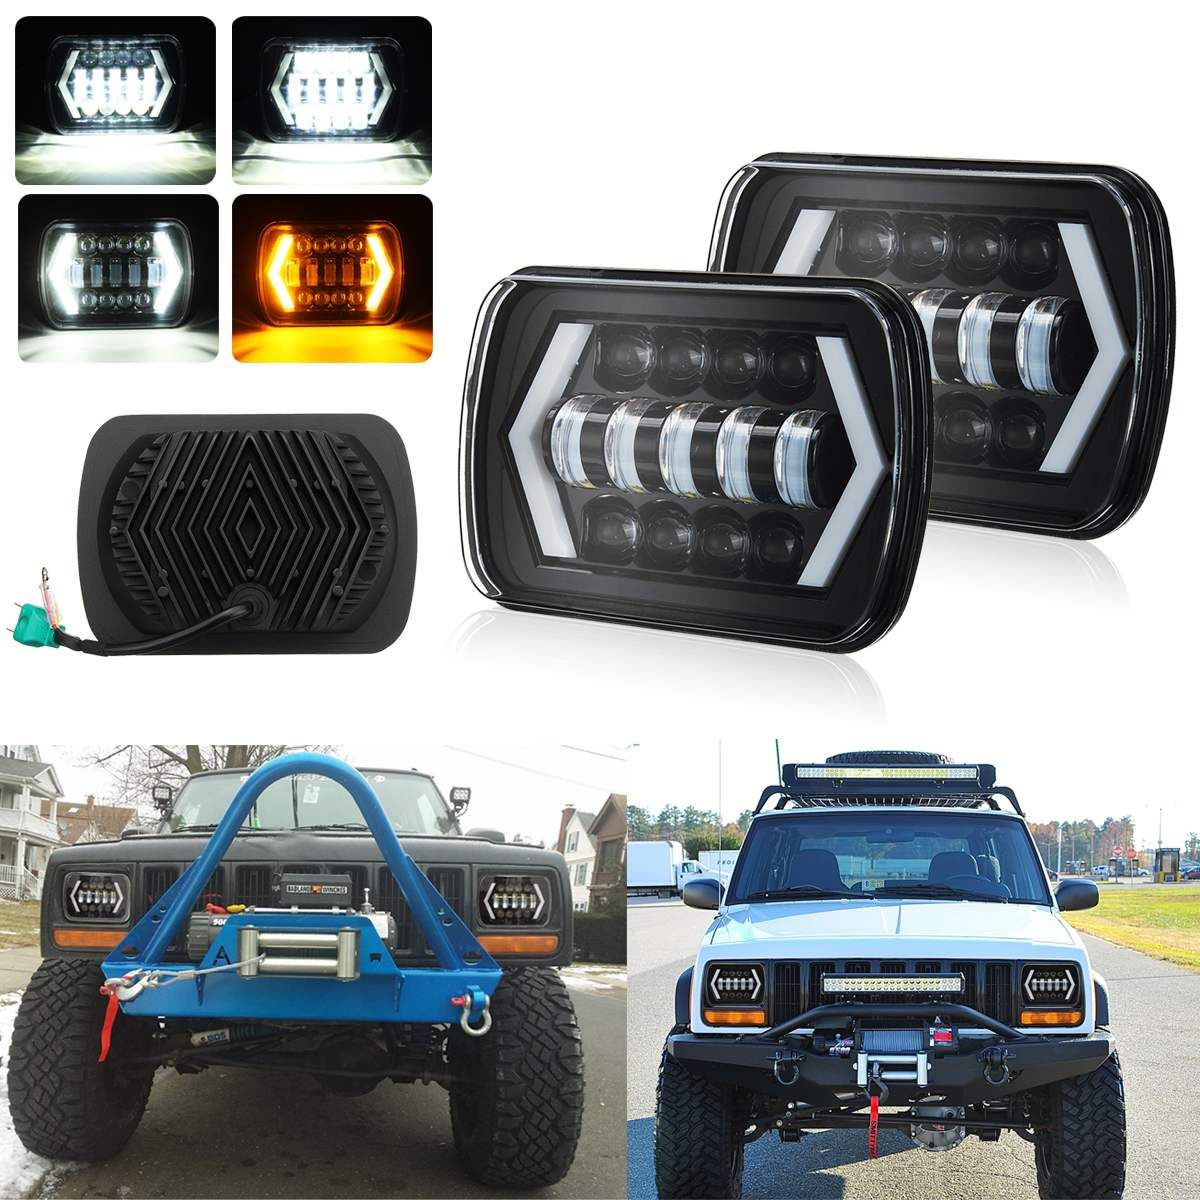 2Pcs For Car ATVs Truck SUV for Nissan 7X6